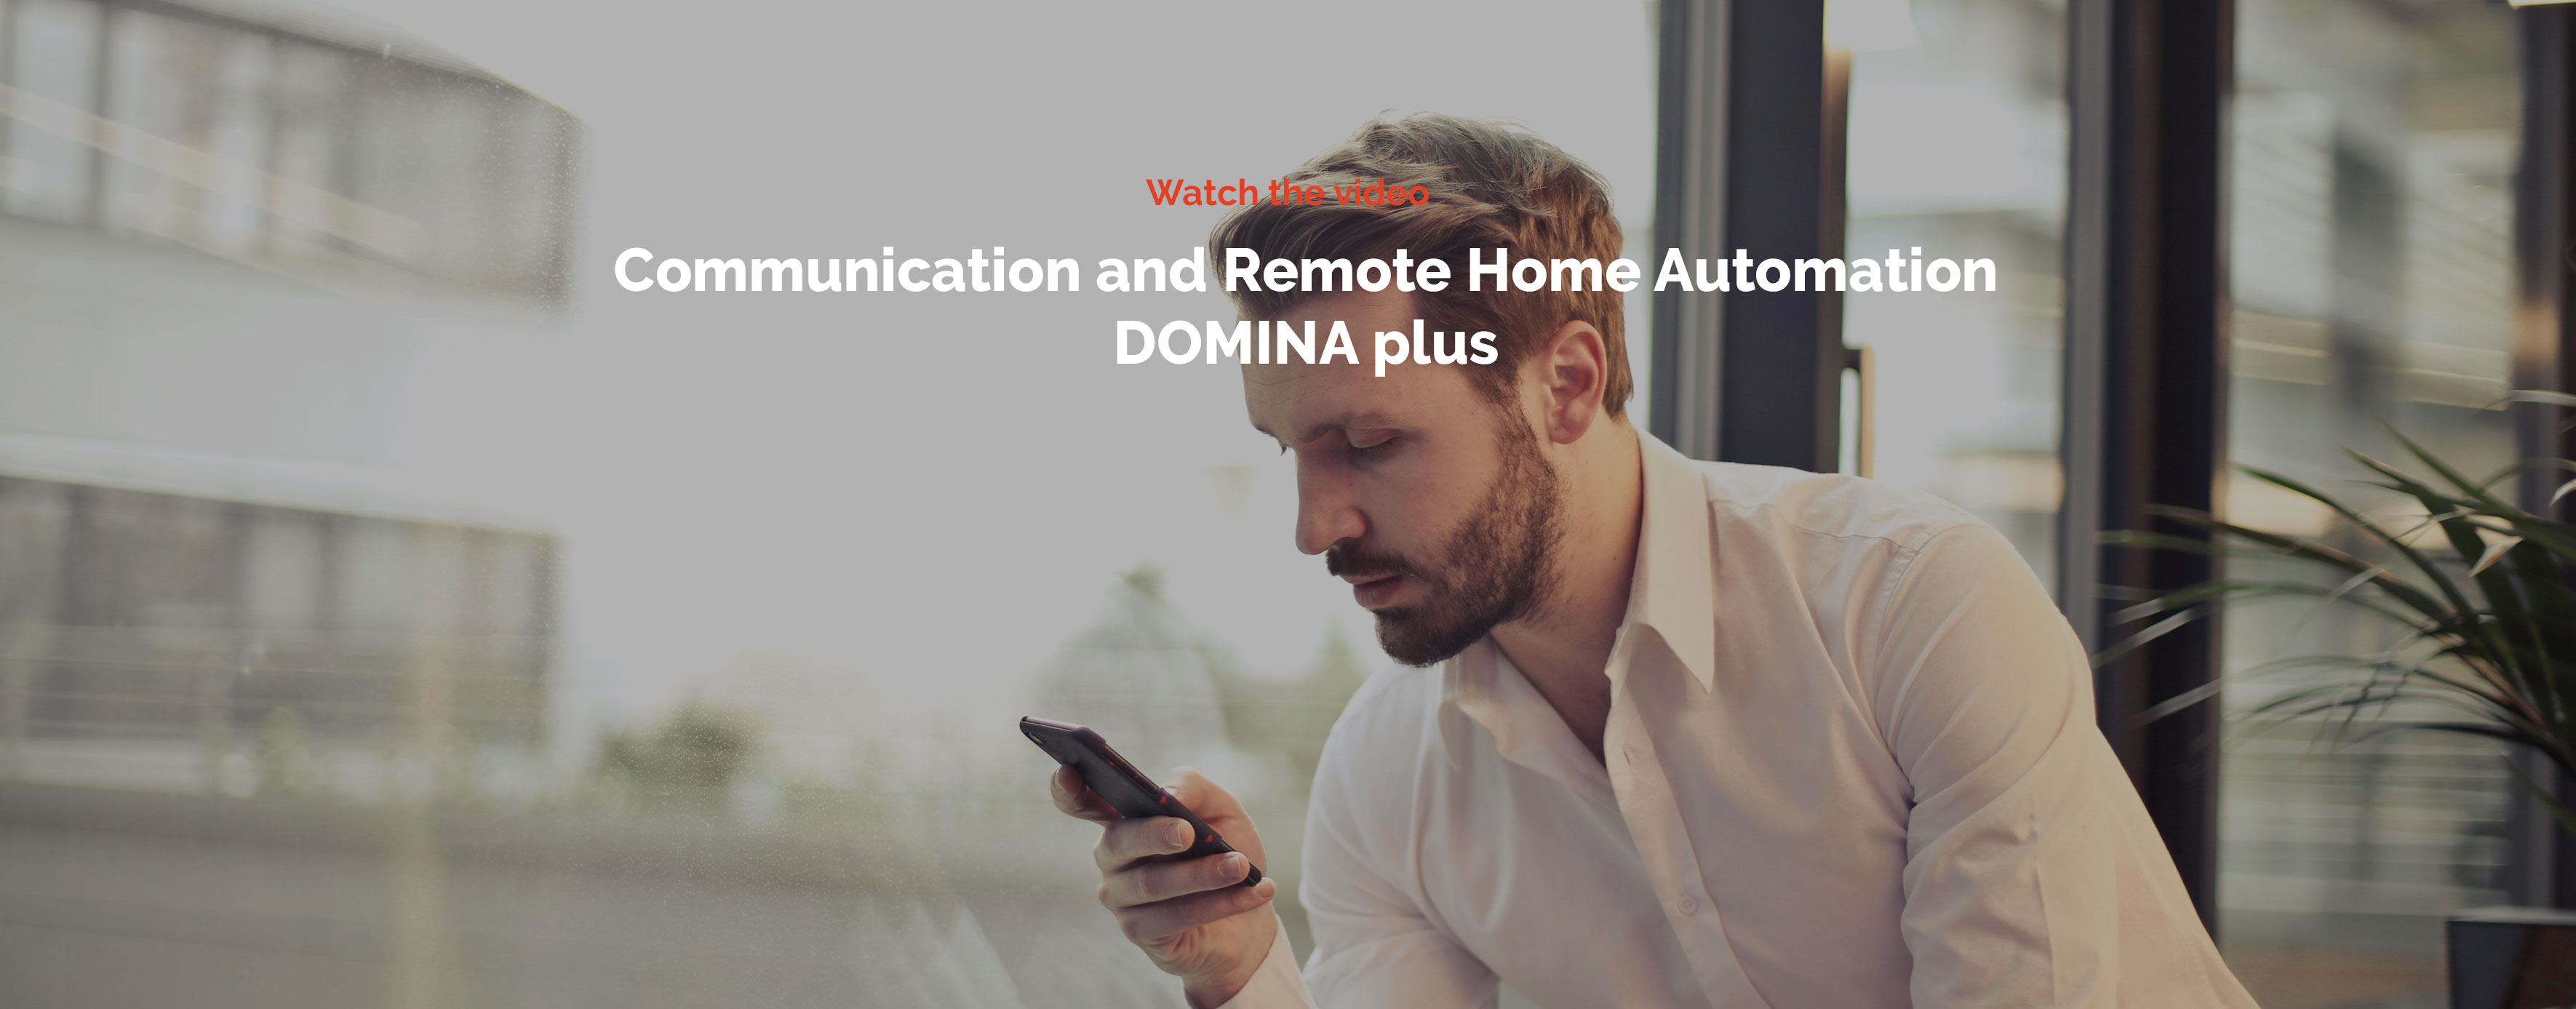 Home automation AVE DOMINA plus - Communication and remote home automation video